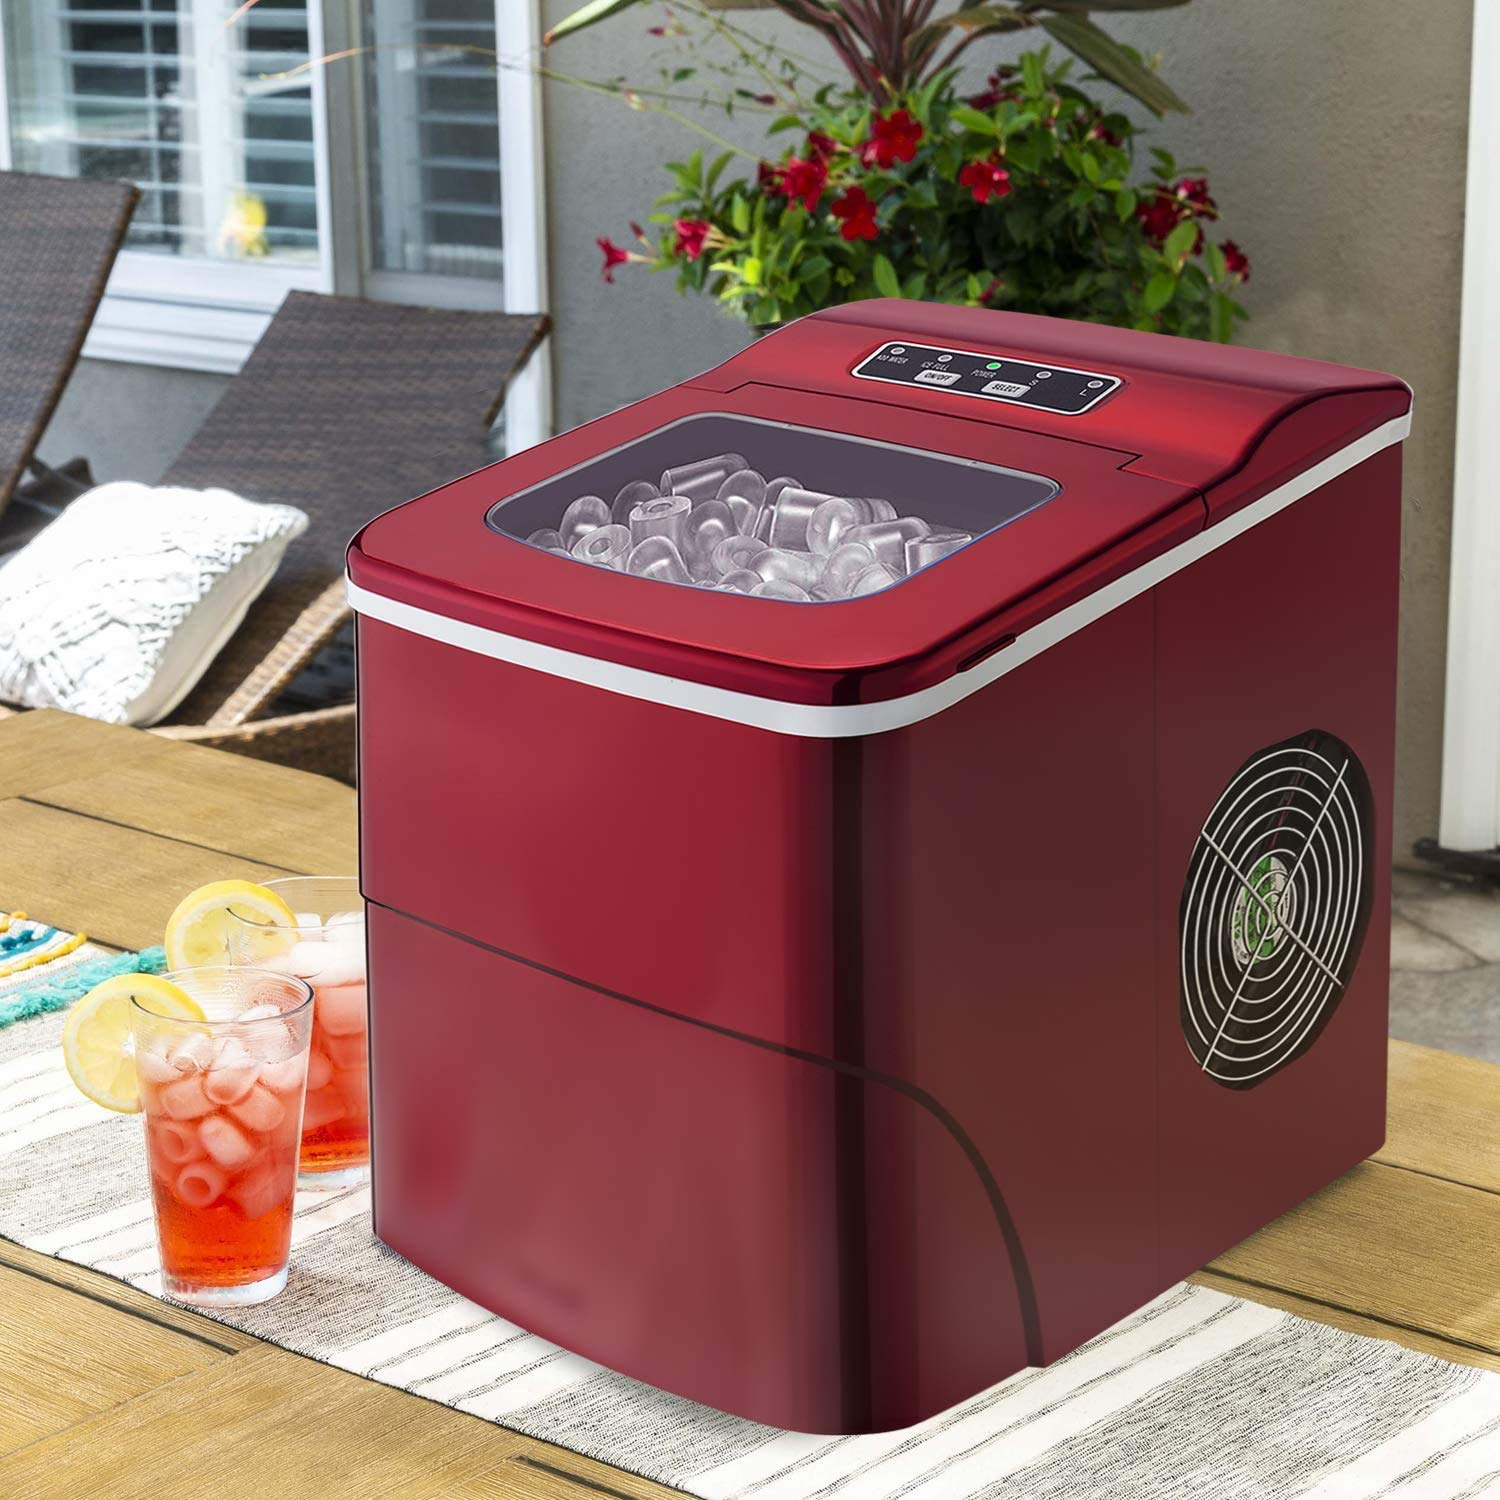 Antartic Star Countertop Portable Ice Maker Machine, 9 Ice Cubes Ready in 8 Minutes,Makes 26 lbs of Ice per 24 hours,with LCD Display, Ice Scoop and Basket Perfect for Parties Mixed Drinks.(red)